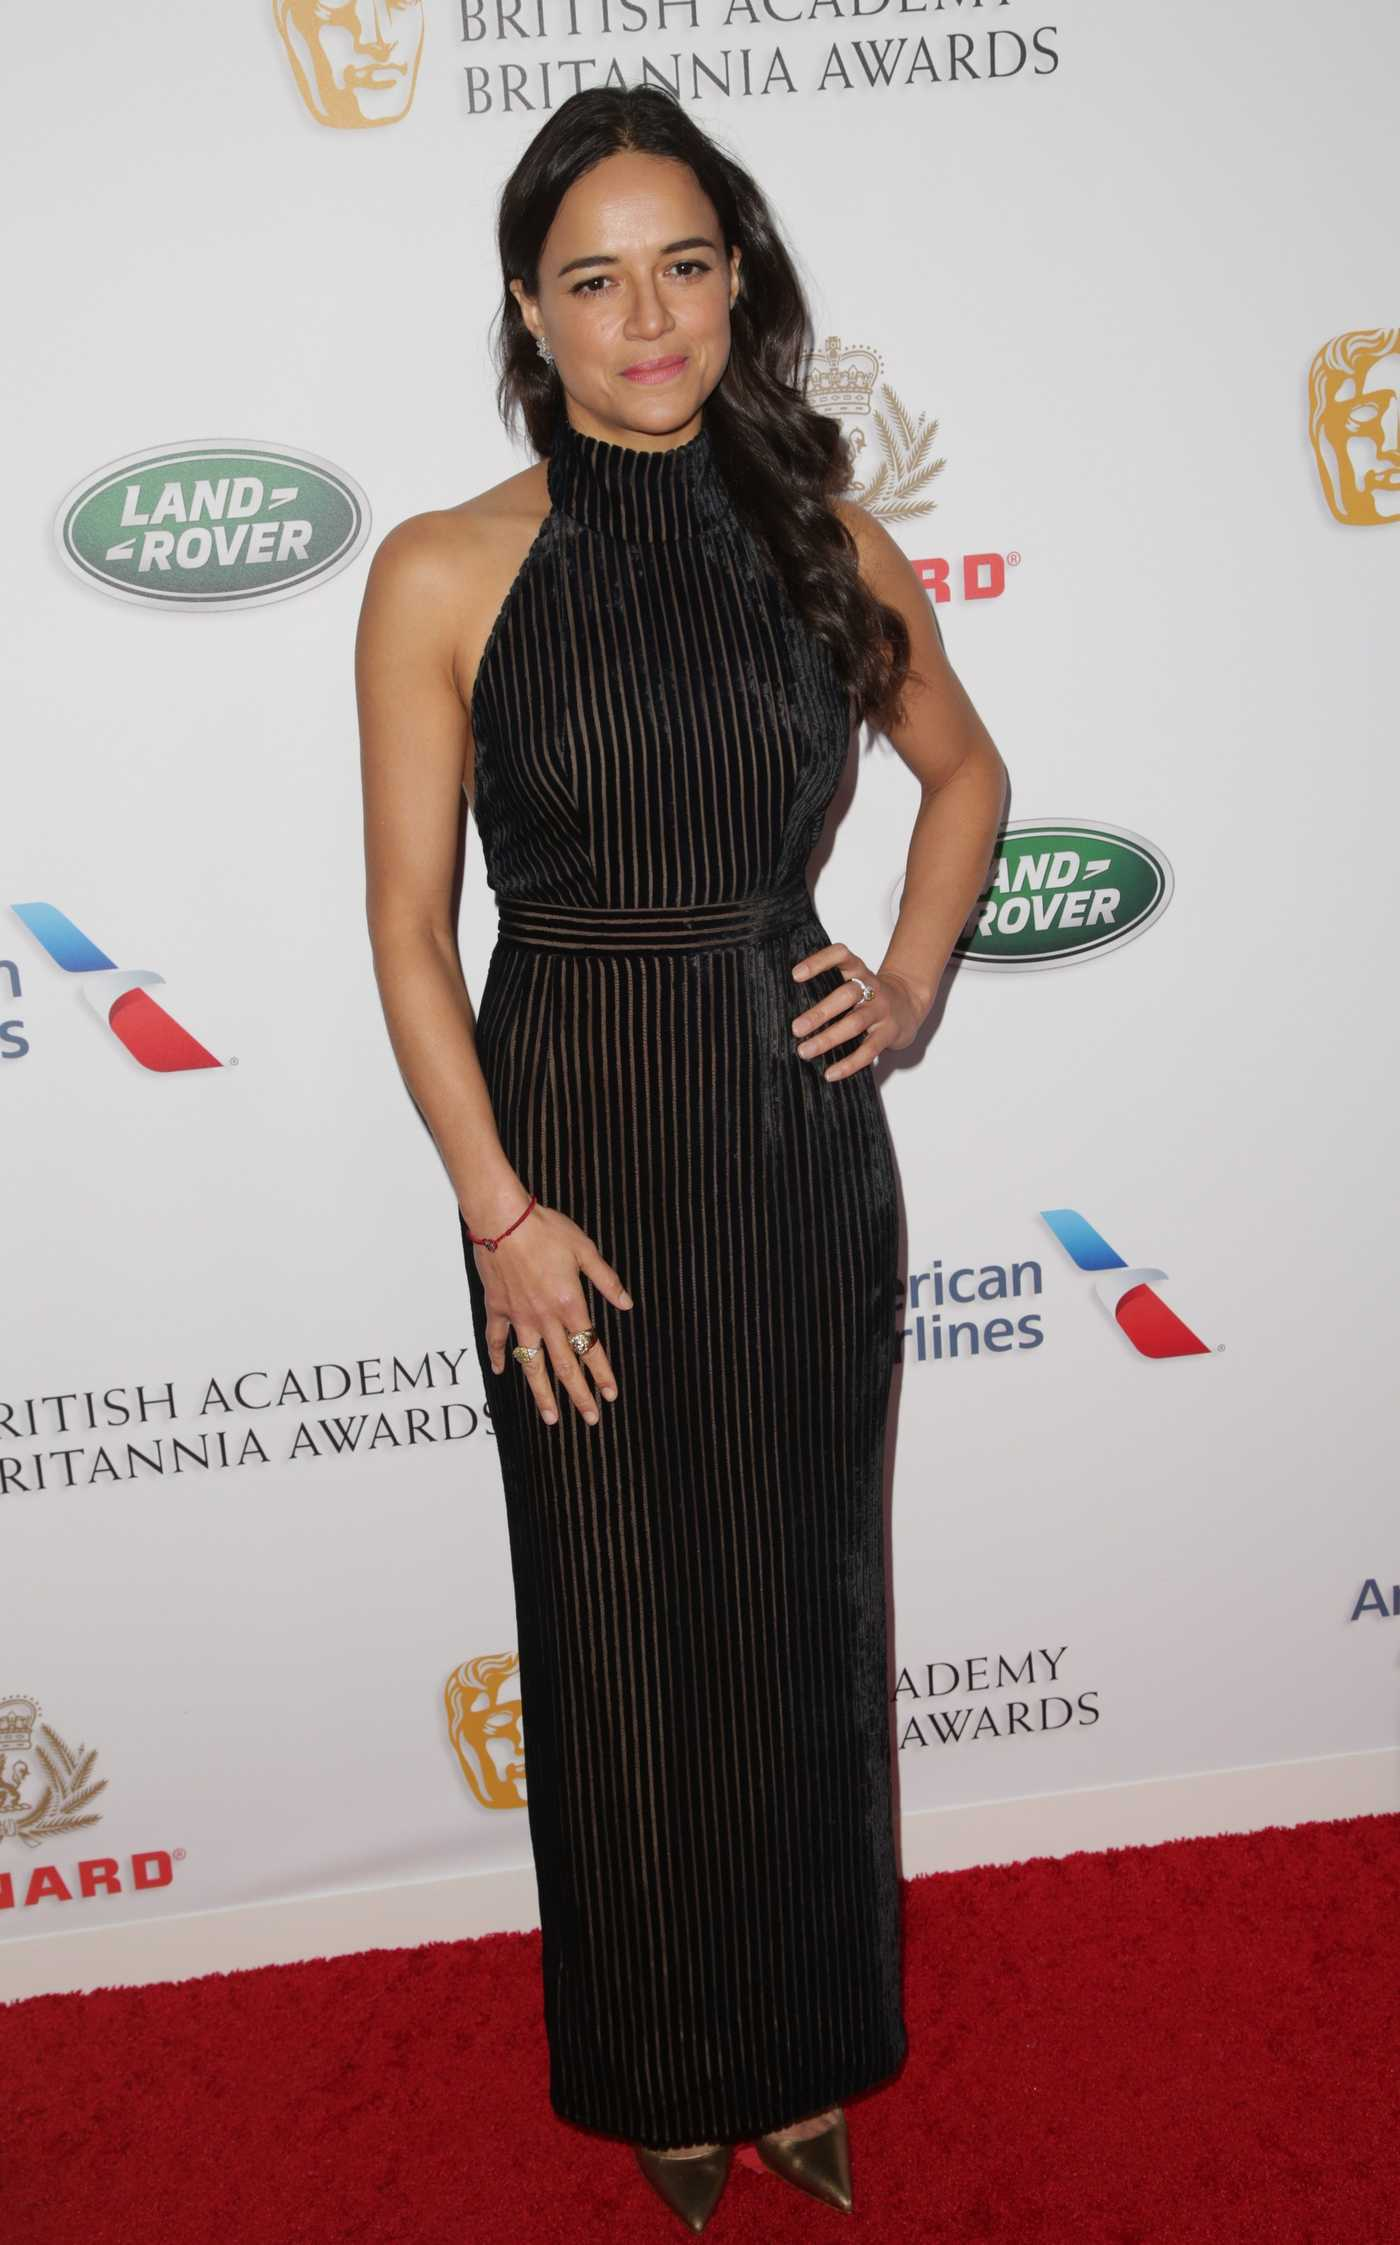 Michelle Rodriguez Attends 2018 British Academy Britannia Awards in LA 10/26/2018